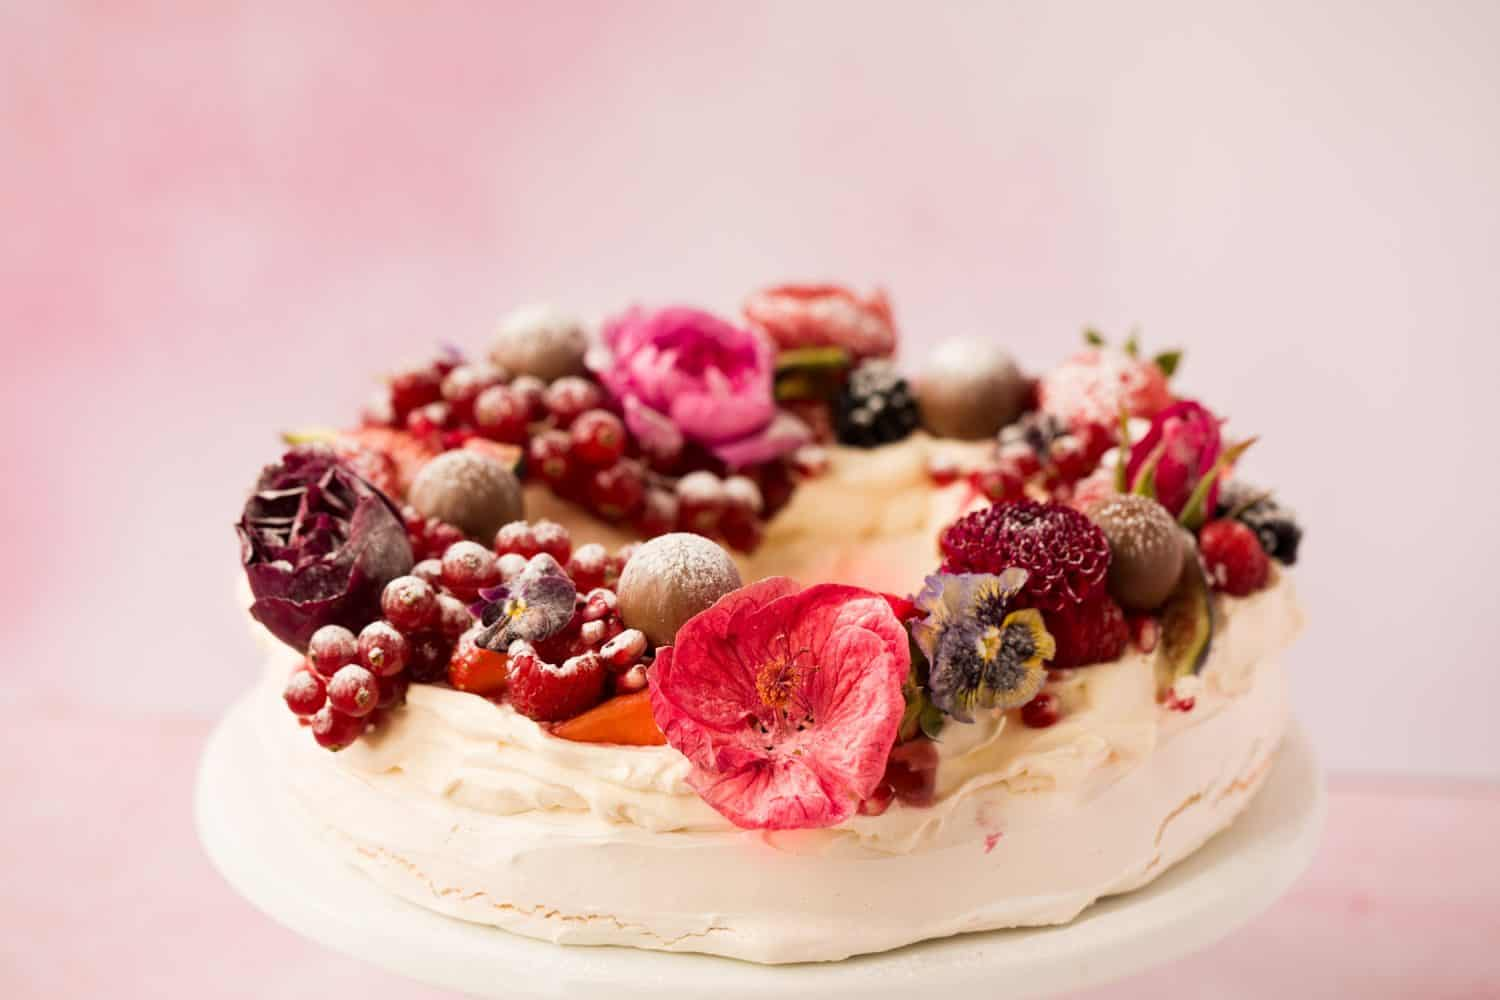 3/4 angle of a circular pavlova that has been decorated with fruit and edible flowers.